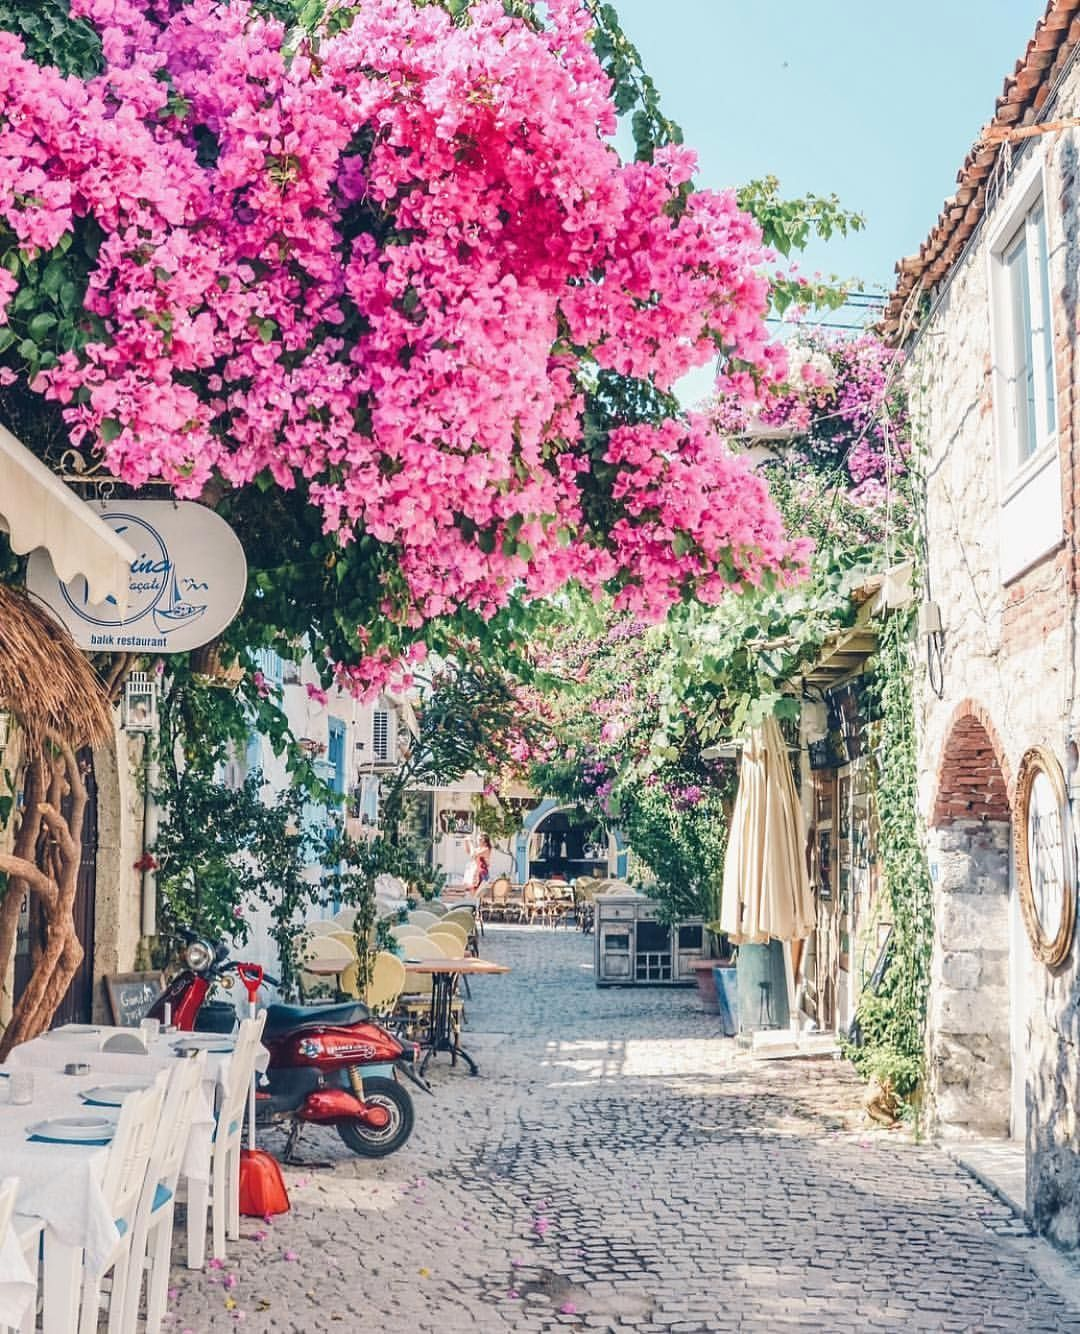 Alacati Turkey 🌺🌺🌺 Picture by iamtravelr .